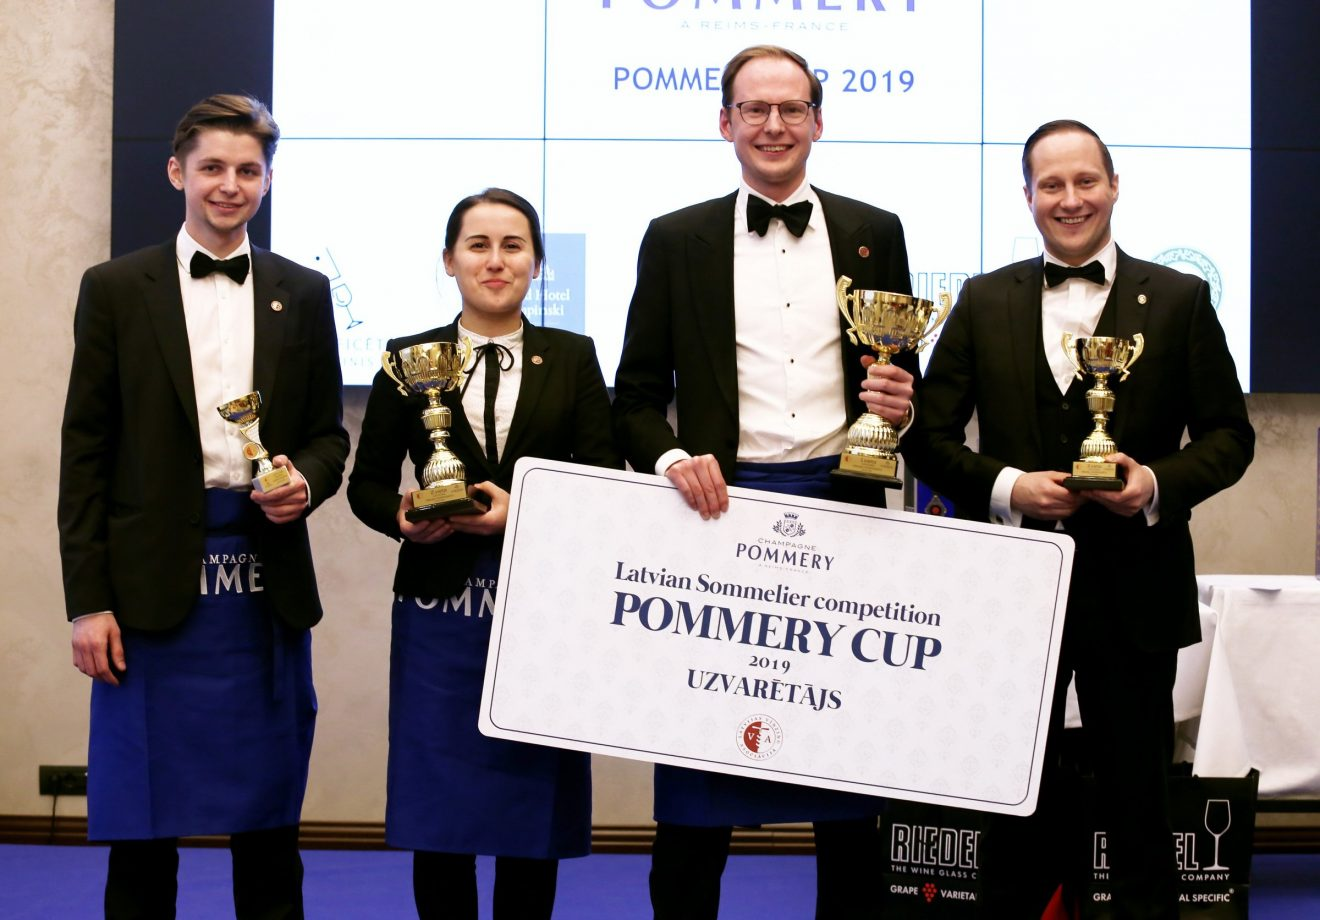 Sommelier Competition in Latvia